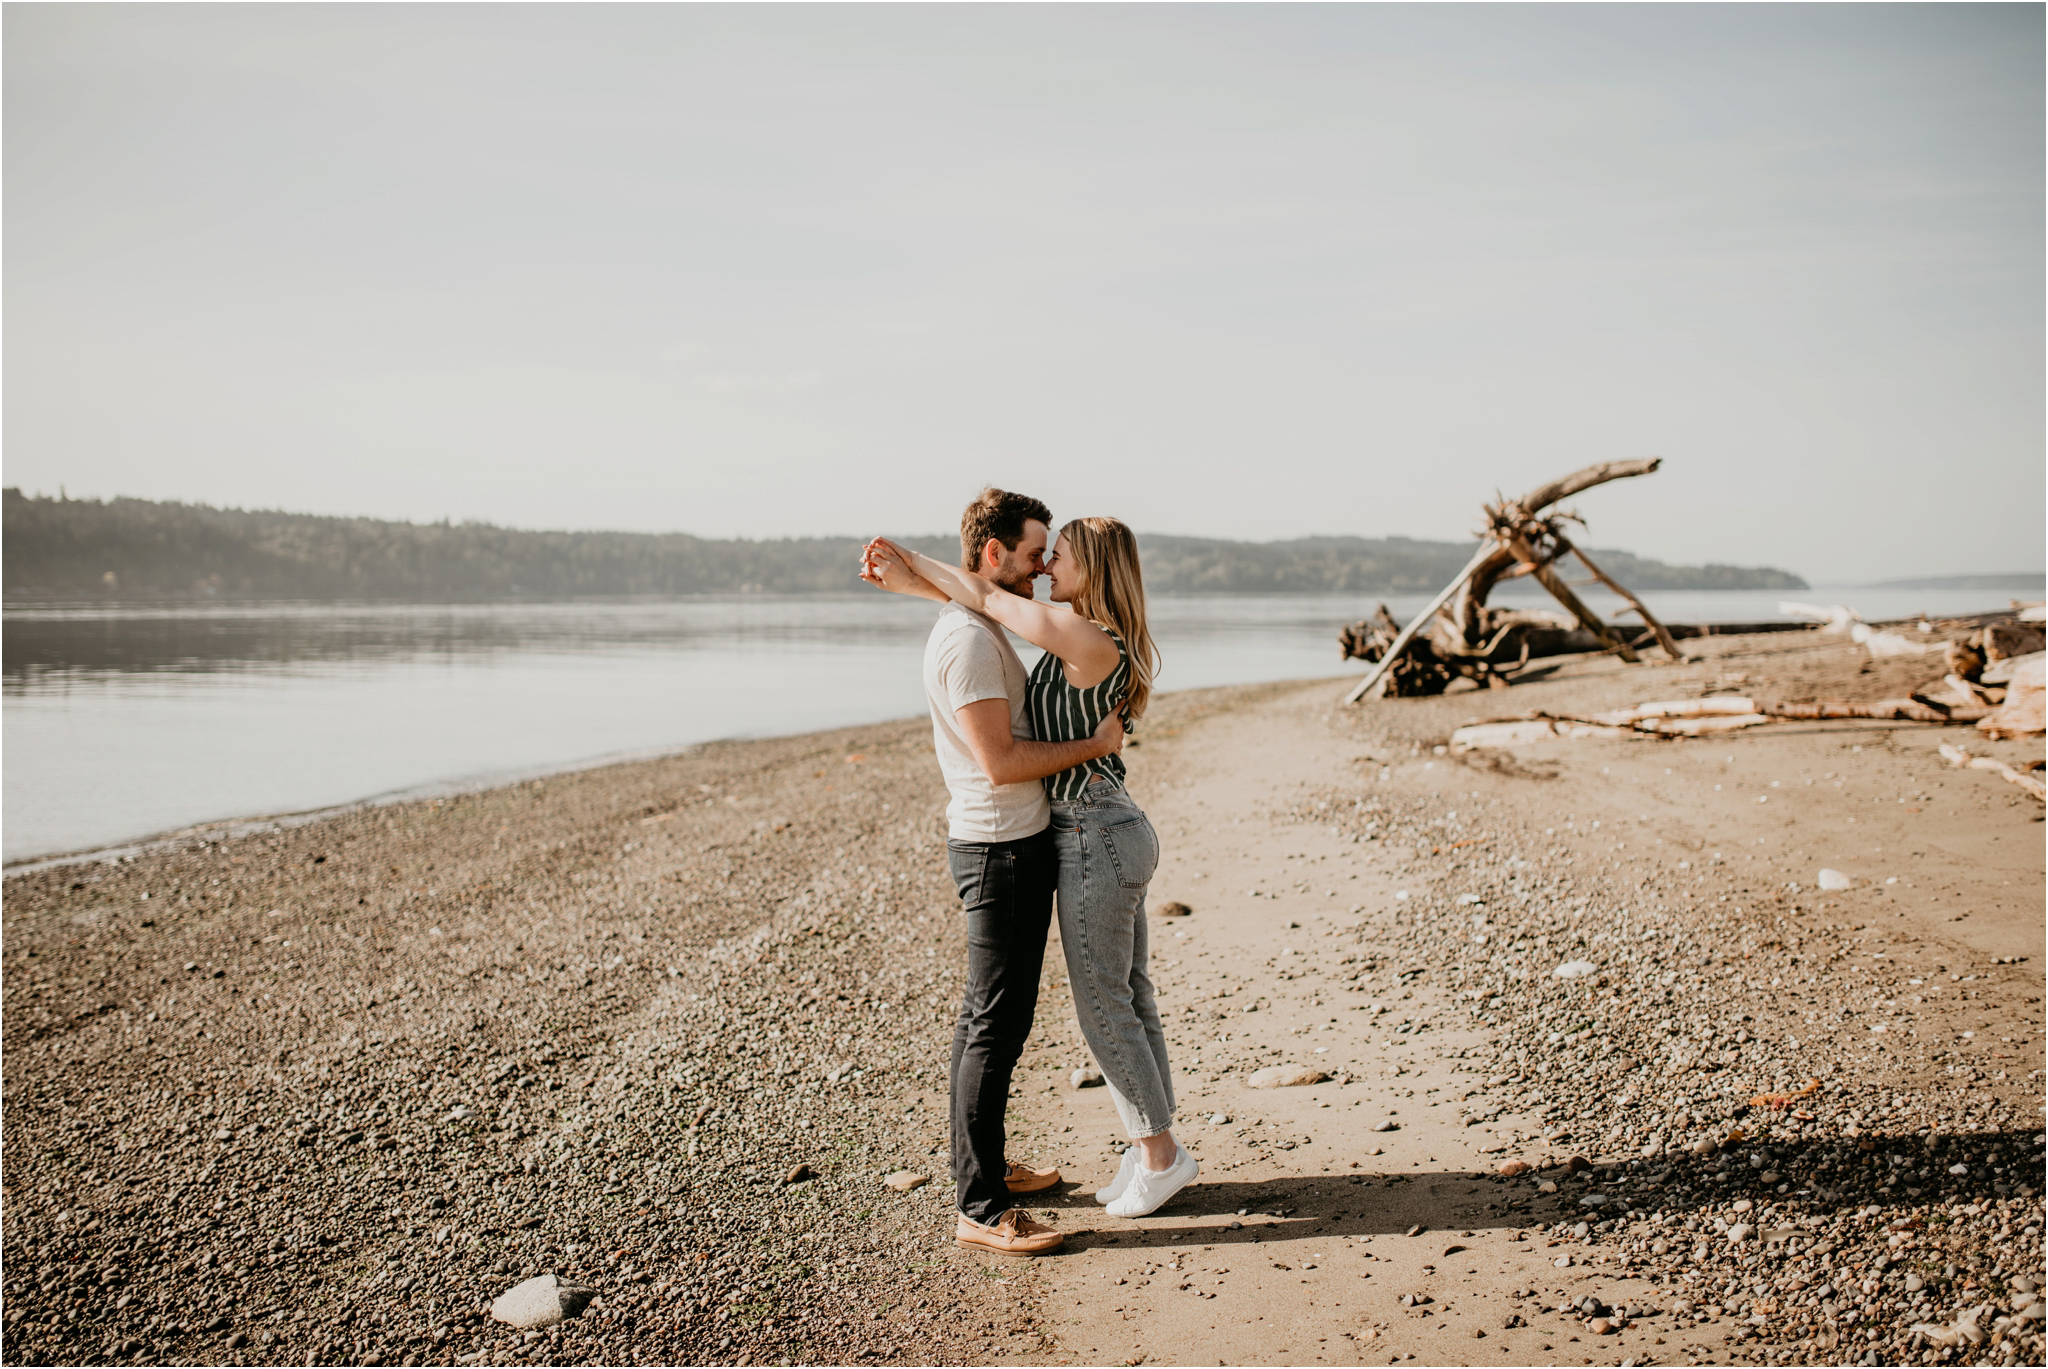 rile-and-ryan-fauntleroy-ferry-vashon-island-seattle-engagement-session-014.jpg